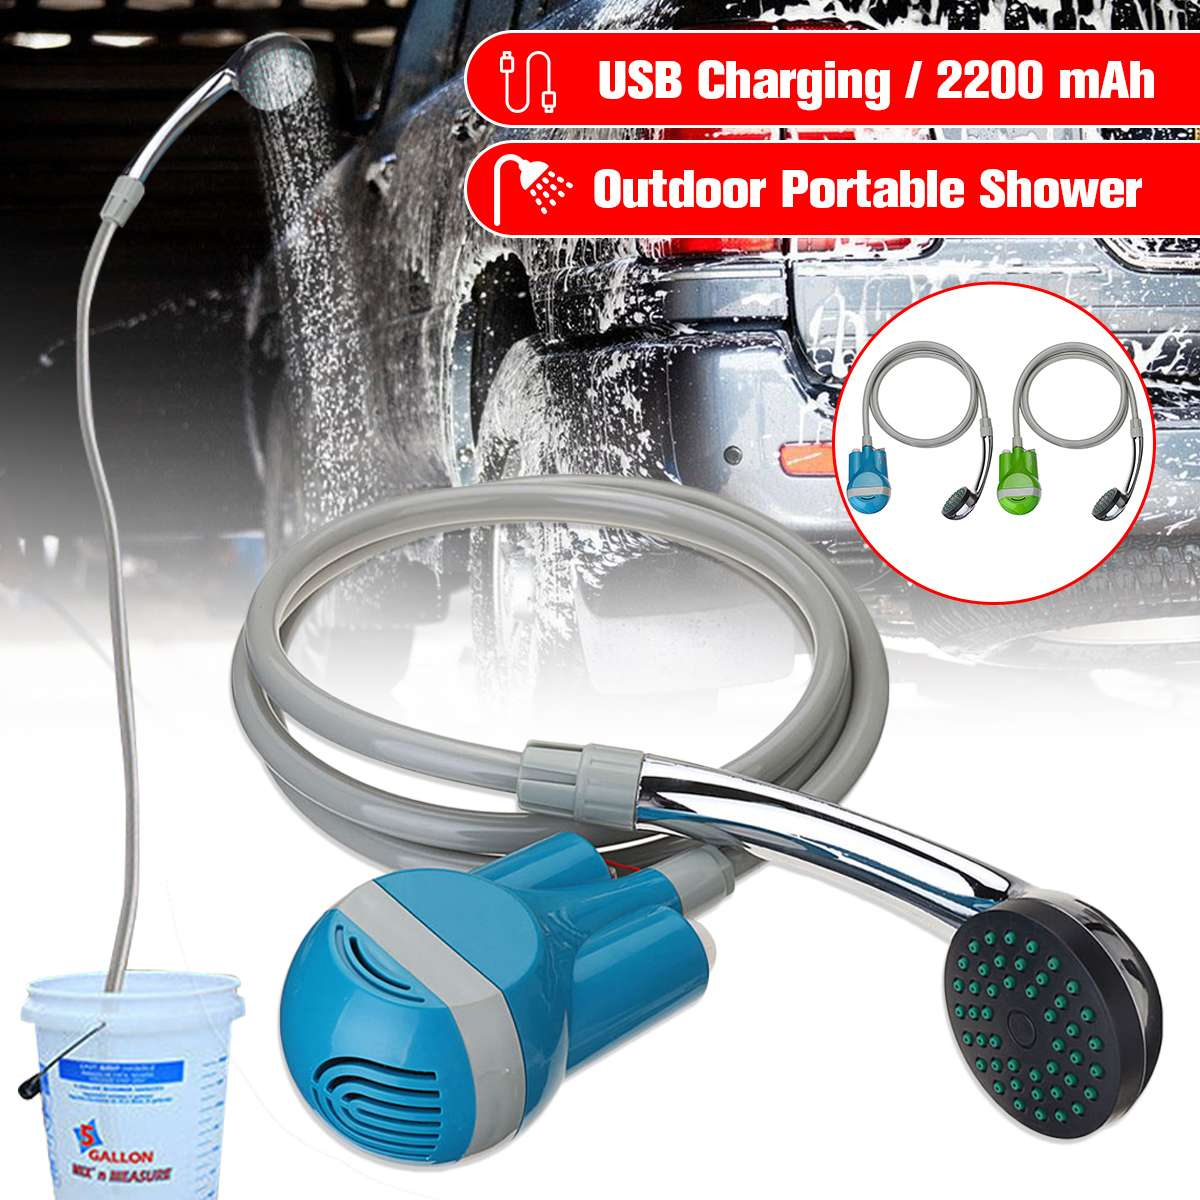 Portable Camping ShowerCar Washer 12V Wireless Car Shower DC 12V pump pressure shower Outdoor Travel Caravan Van Pet Water Tank title=